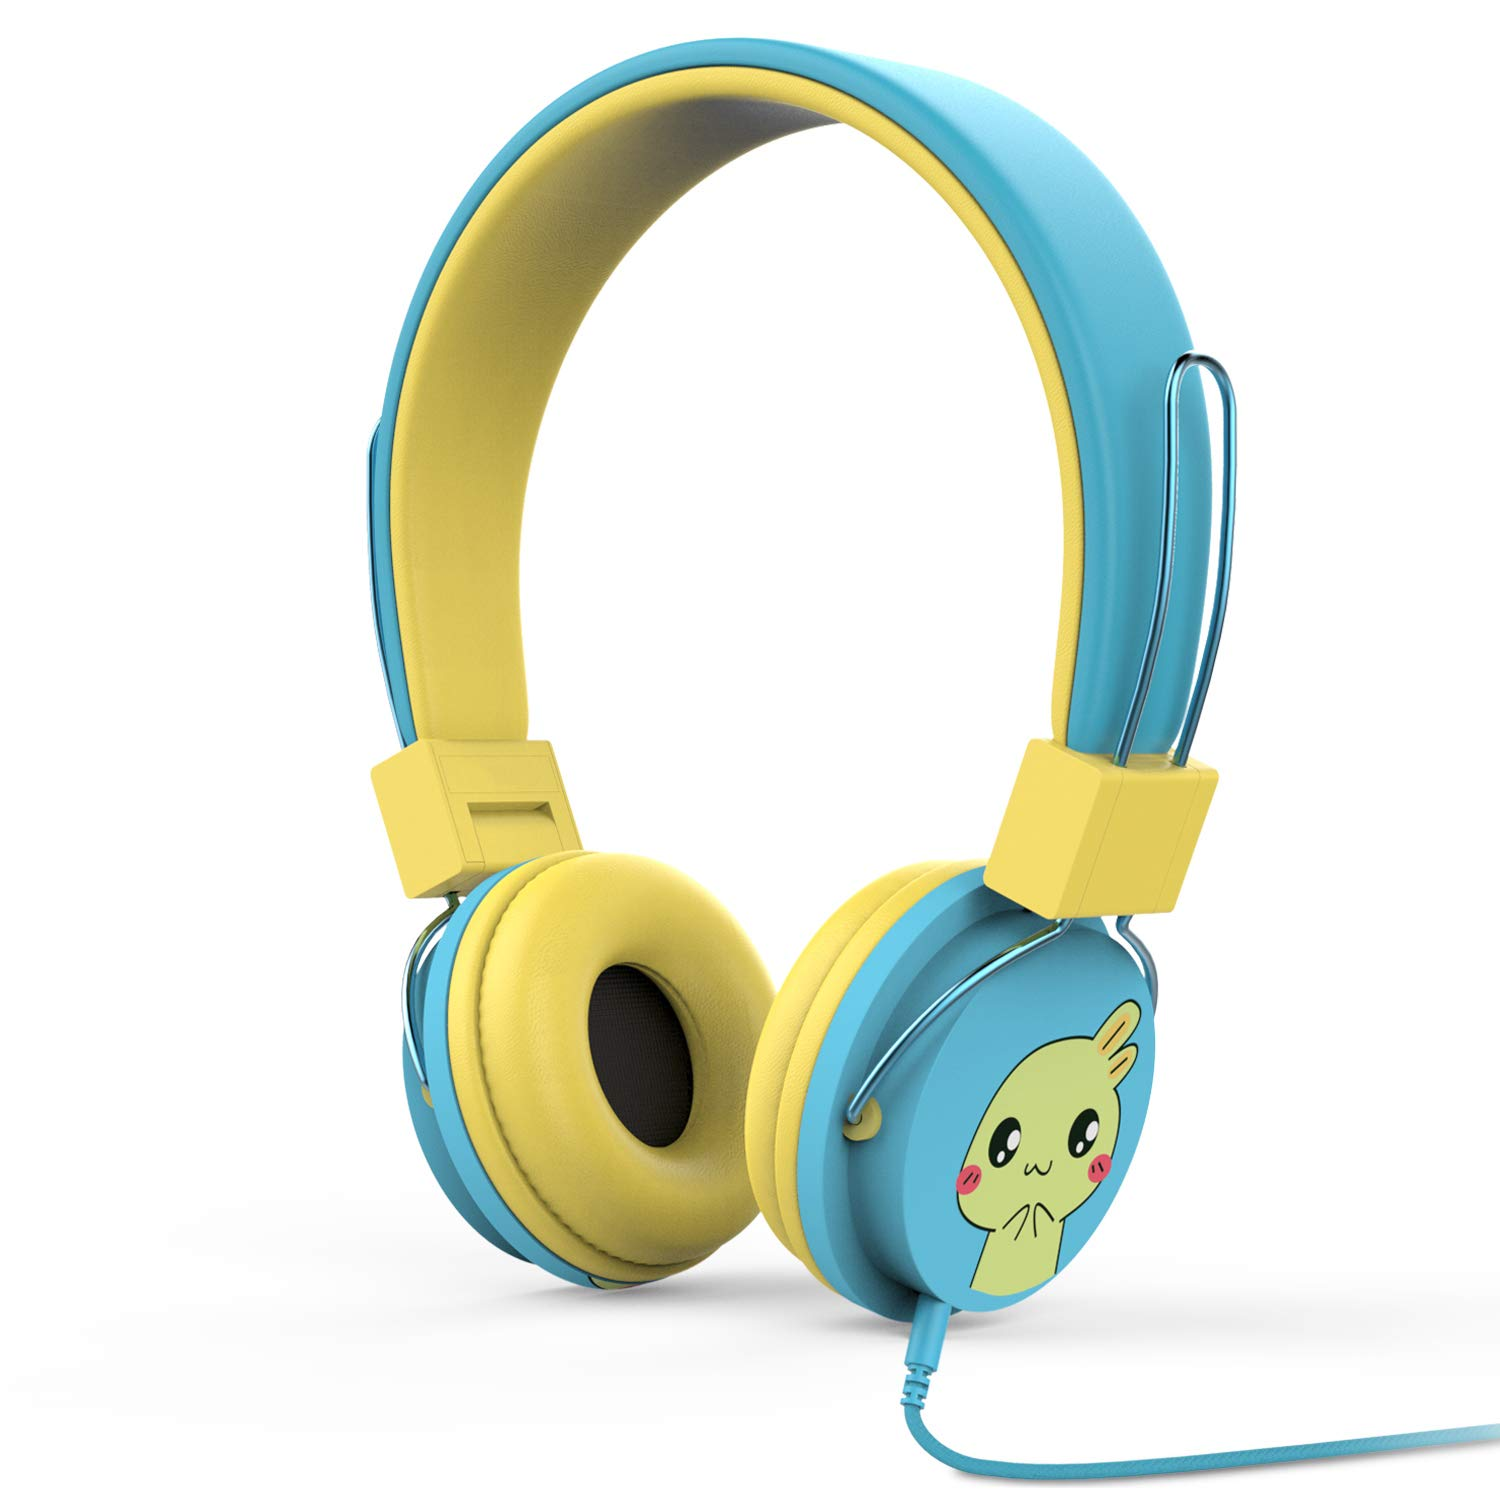 MoKo Kids Headphones, On-Ear Headphones Volume Limiting Wired (1.5m/4.9ft) Headset with SharePort for Children, Fits LeapFrog, Orbo Jr, Dragon Touch Tablets, Smartphones, Laptop, BLUE